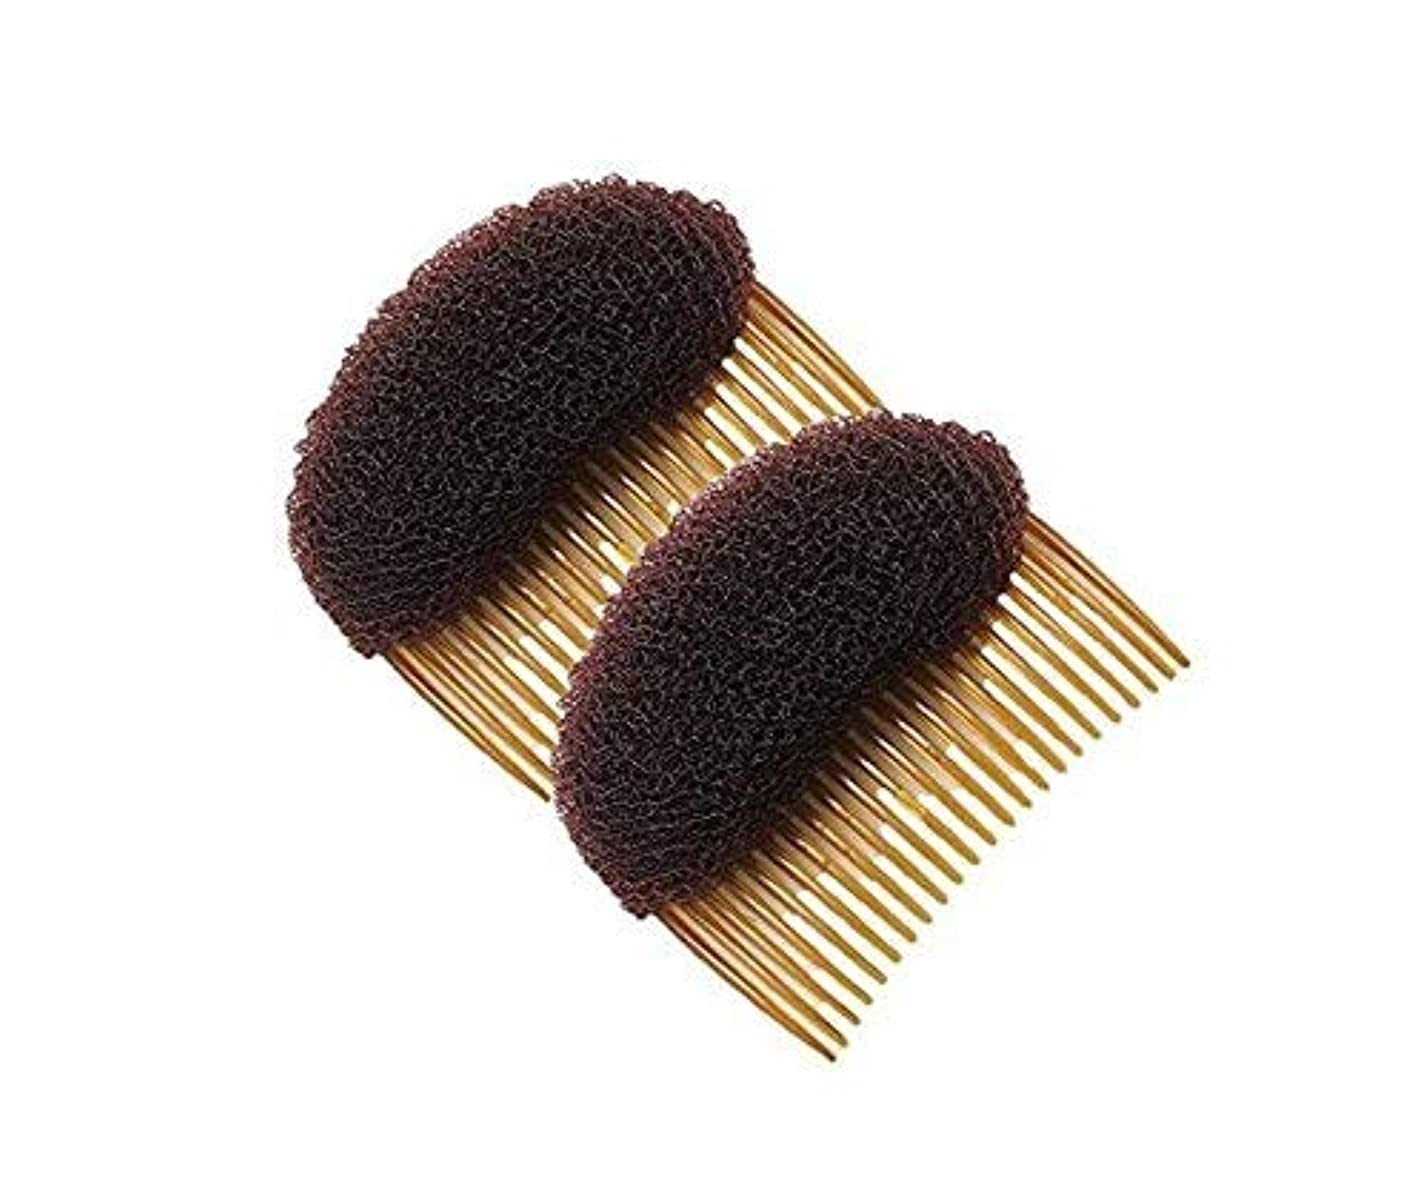 家畜武装解除クレア2PCS 23 Teeth Hair Fringe Volume Bump Up Inserts Tools-Hair Pin Hair Styling Clip Hair Charming Insert Do Beehive Tool Maker Hair Comb Hair Style Accessories (Brown) [並行輸入品]